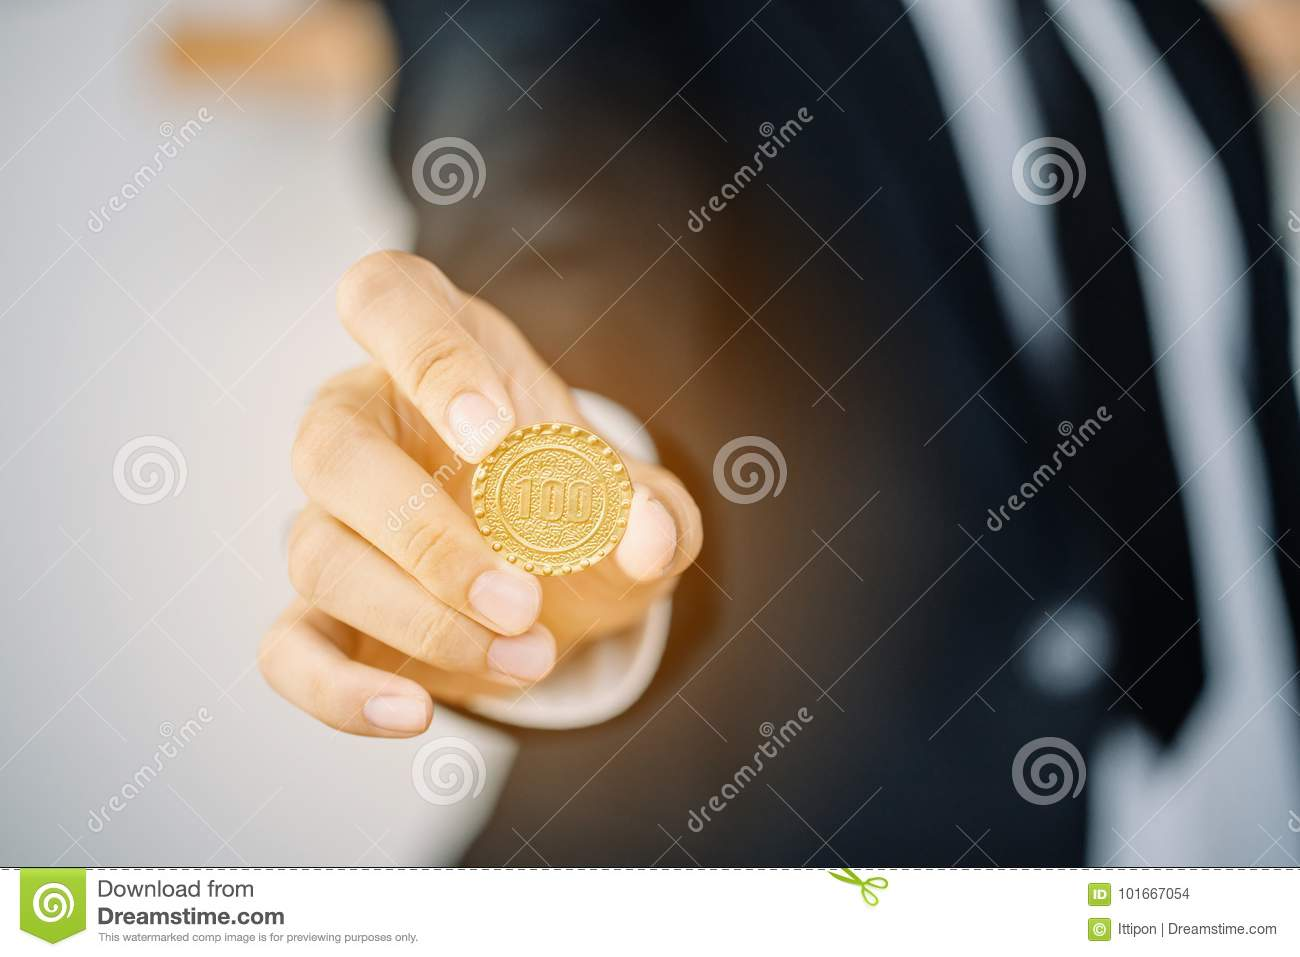 Business Man Holding Coin Stock Photo Image Of Hands 101667054